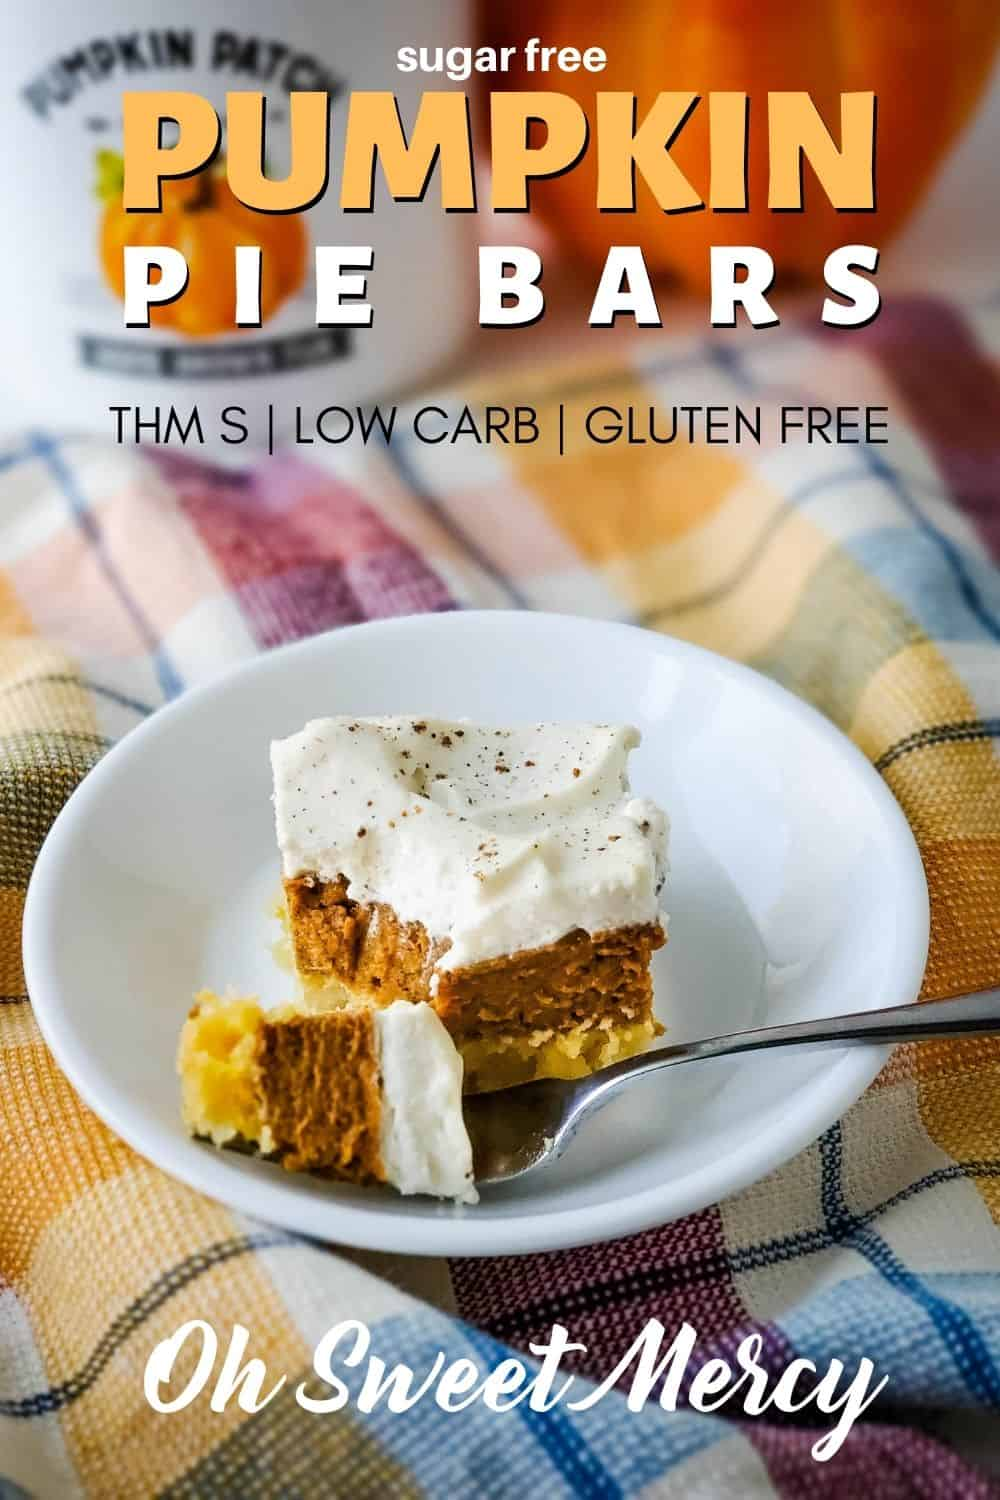 Stick to your low carb goals this season with my easy Sugar Free Pumpkin Pie Bars. No fussing with low carb pie crust, either. Just the delicious, traditional taste of baked pumpkin pie - without sugar, loads of carbs, or gluten. Make with THM Baking Blend or almond flour. Perfect for holiday meals to keep temptation at bay. #thm #lowcarb #sugarfree #glutenfree #keto @ohsweetmercy